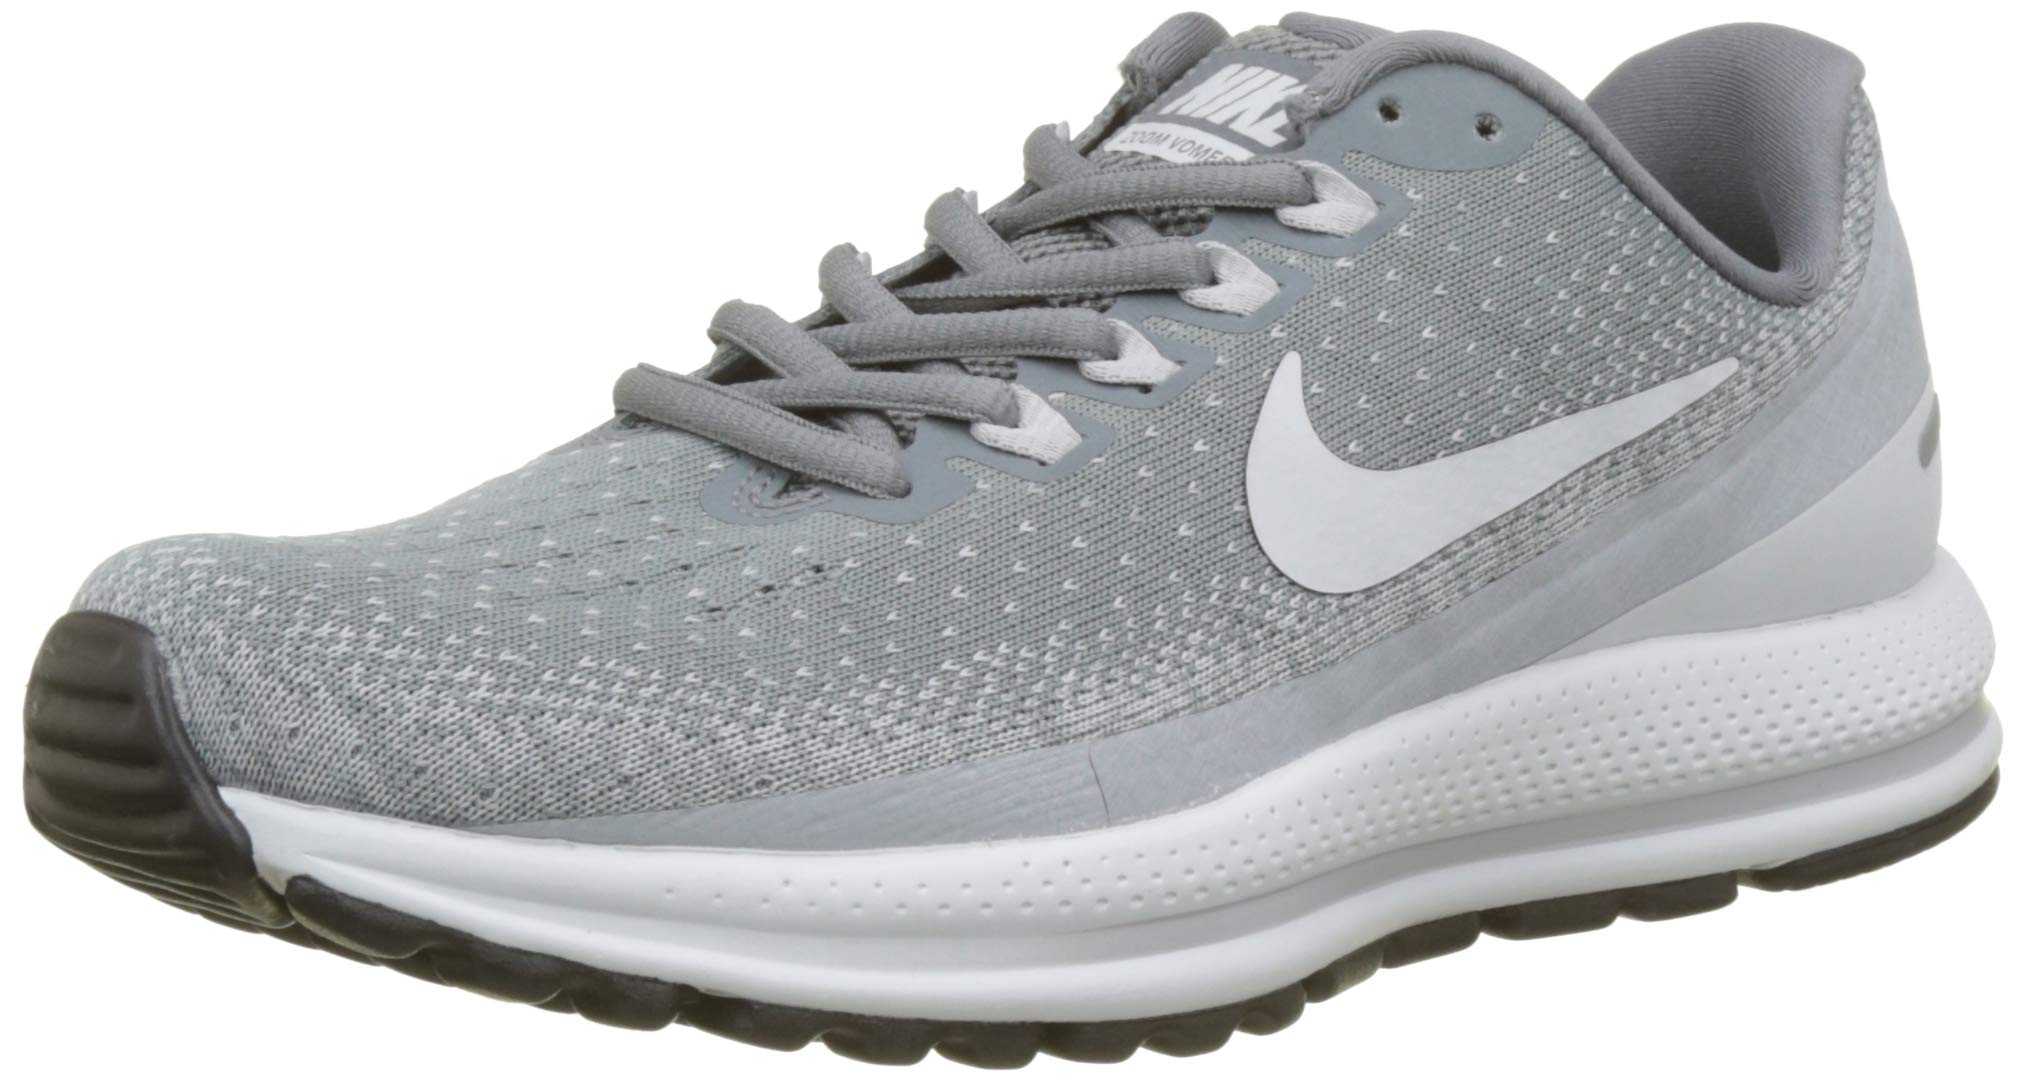 Nike Women's Air Zoom Vomero 13 Running Shoe Cool Grey/Pure Platinum-Wolf Grey-White 6.0